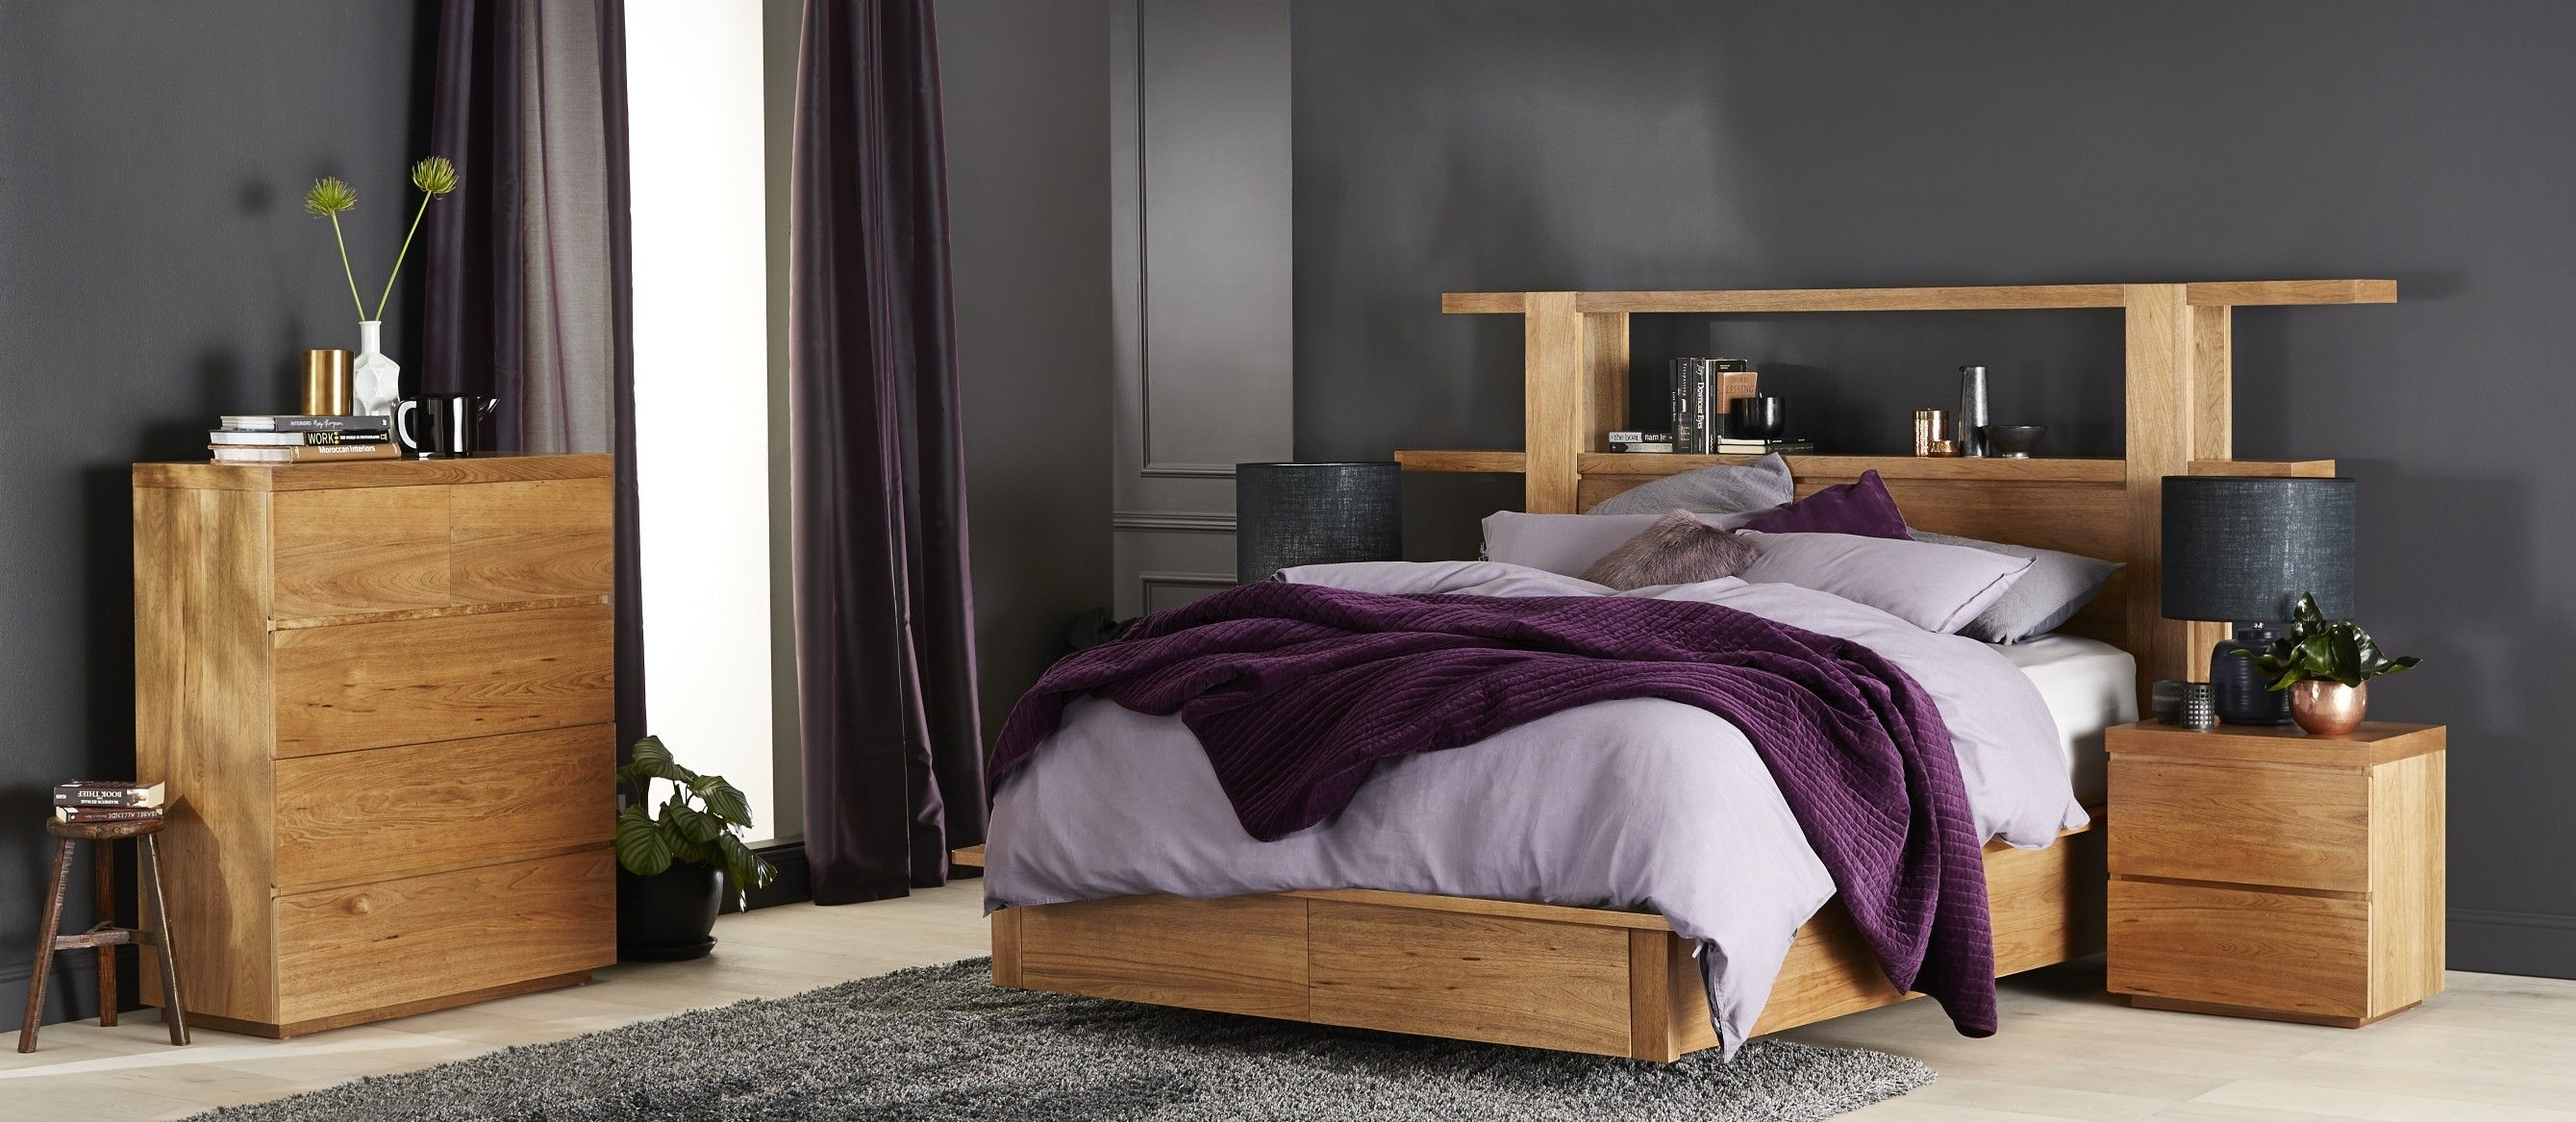 Grandeur Bedroom Furniture Crafted From Solid Mountain Ash